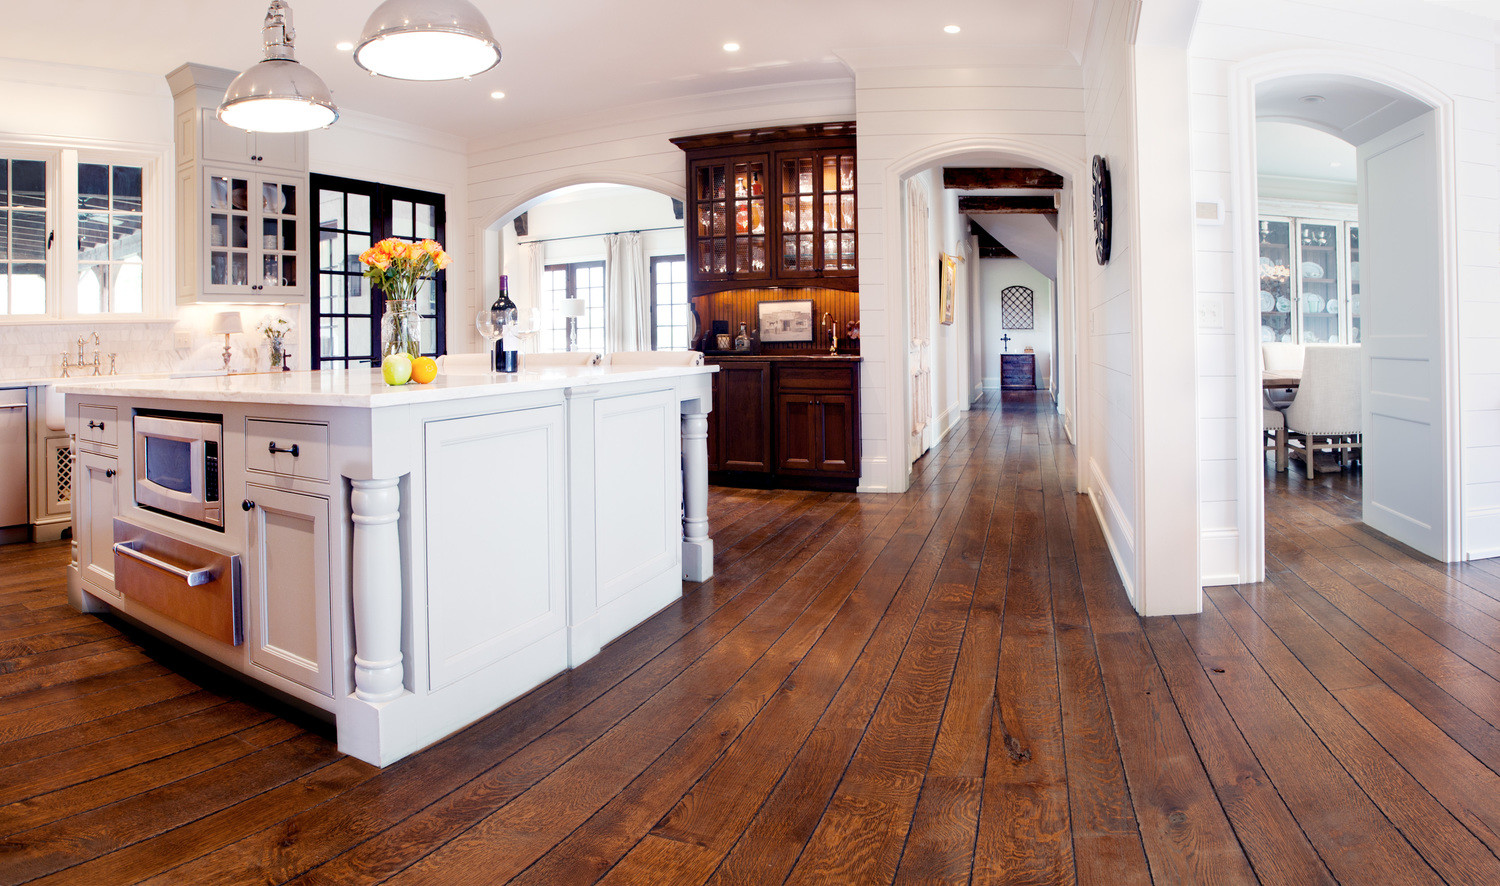 Costco Hardwood Flooring Installation Cost Of Breathtaking Hardwood Flooring Pictures Beautiful Floors are Here Only with Breathtaking Hardwood Flooring Picture Brampton Store Affordable Floor Pricing Cost Near Me toronto Lowe Home Depot